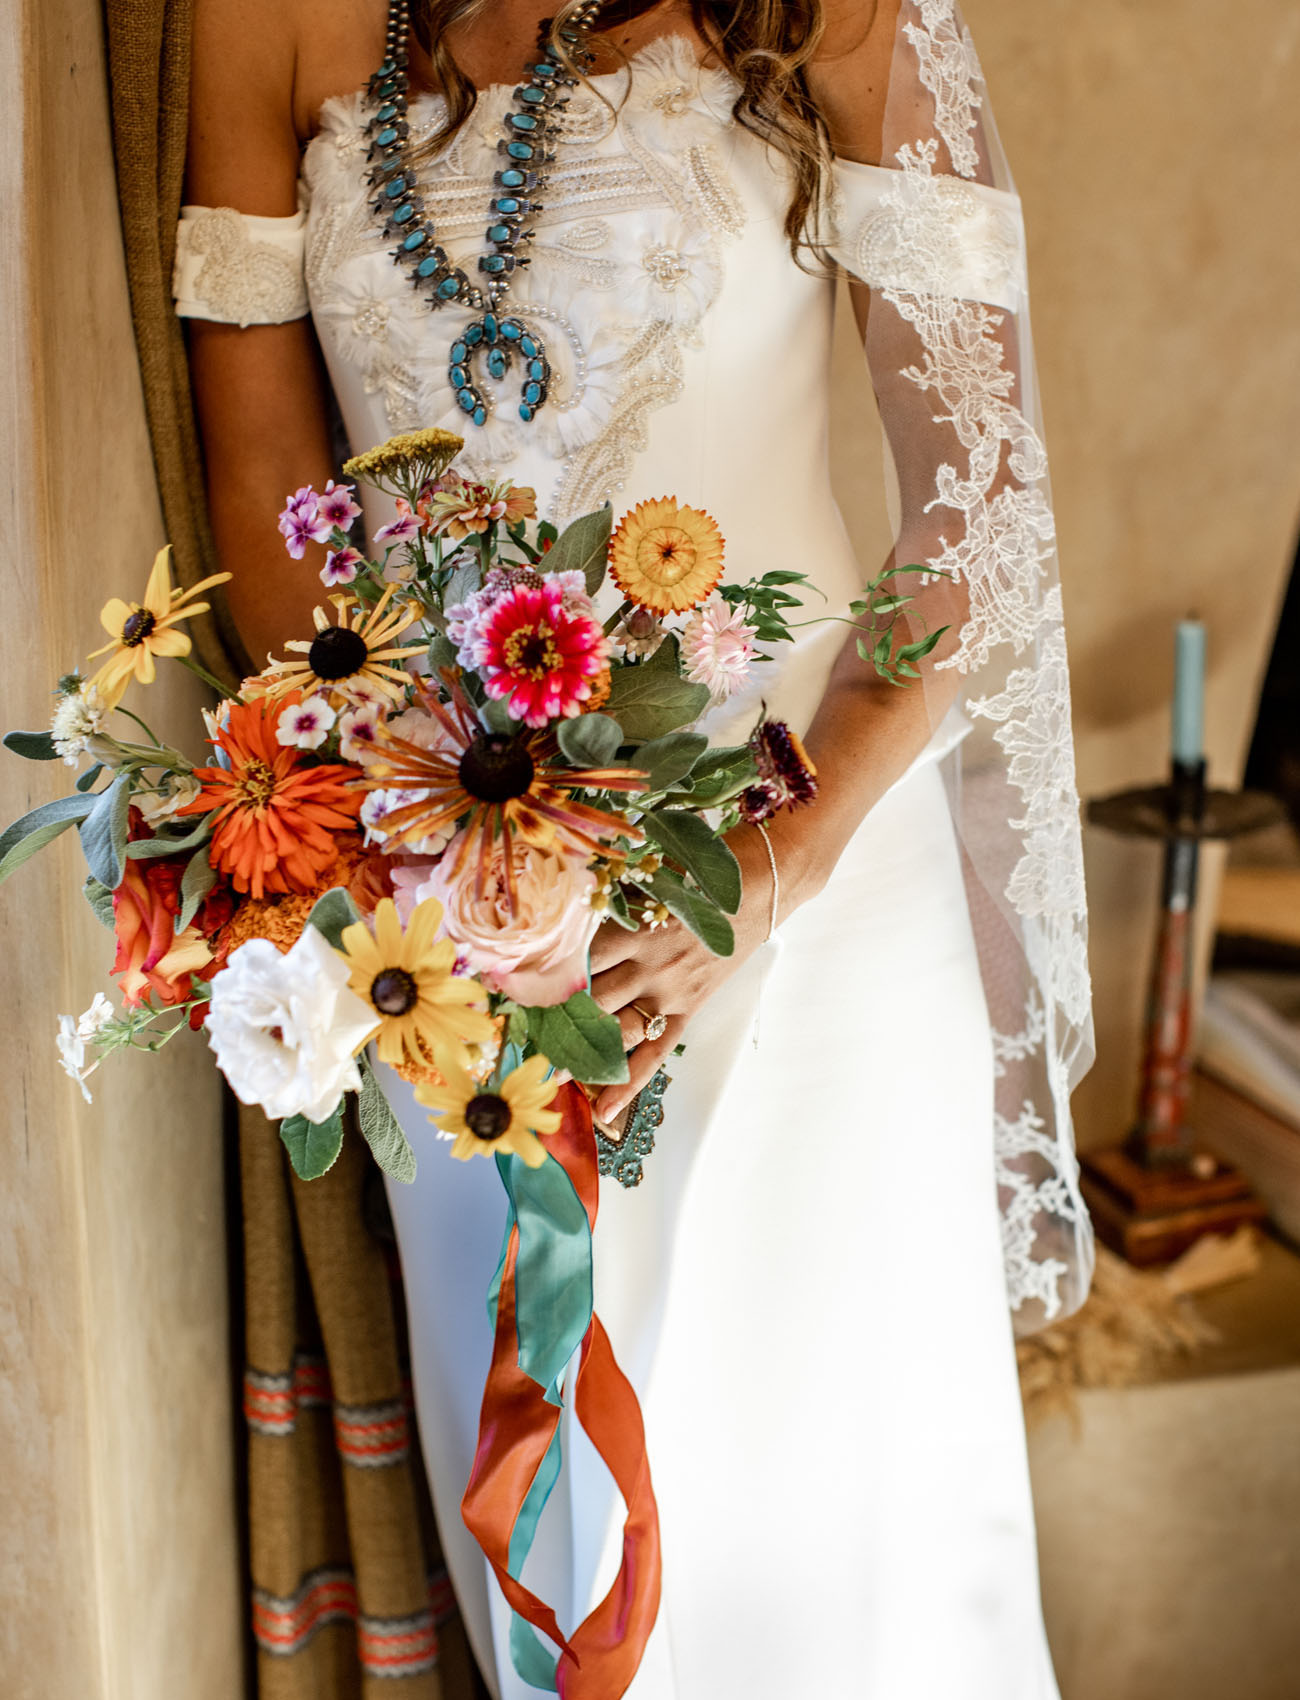 A turquoise necklace and a bright bouquet finished off the bridal look